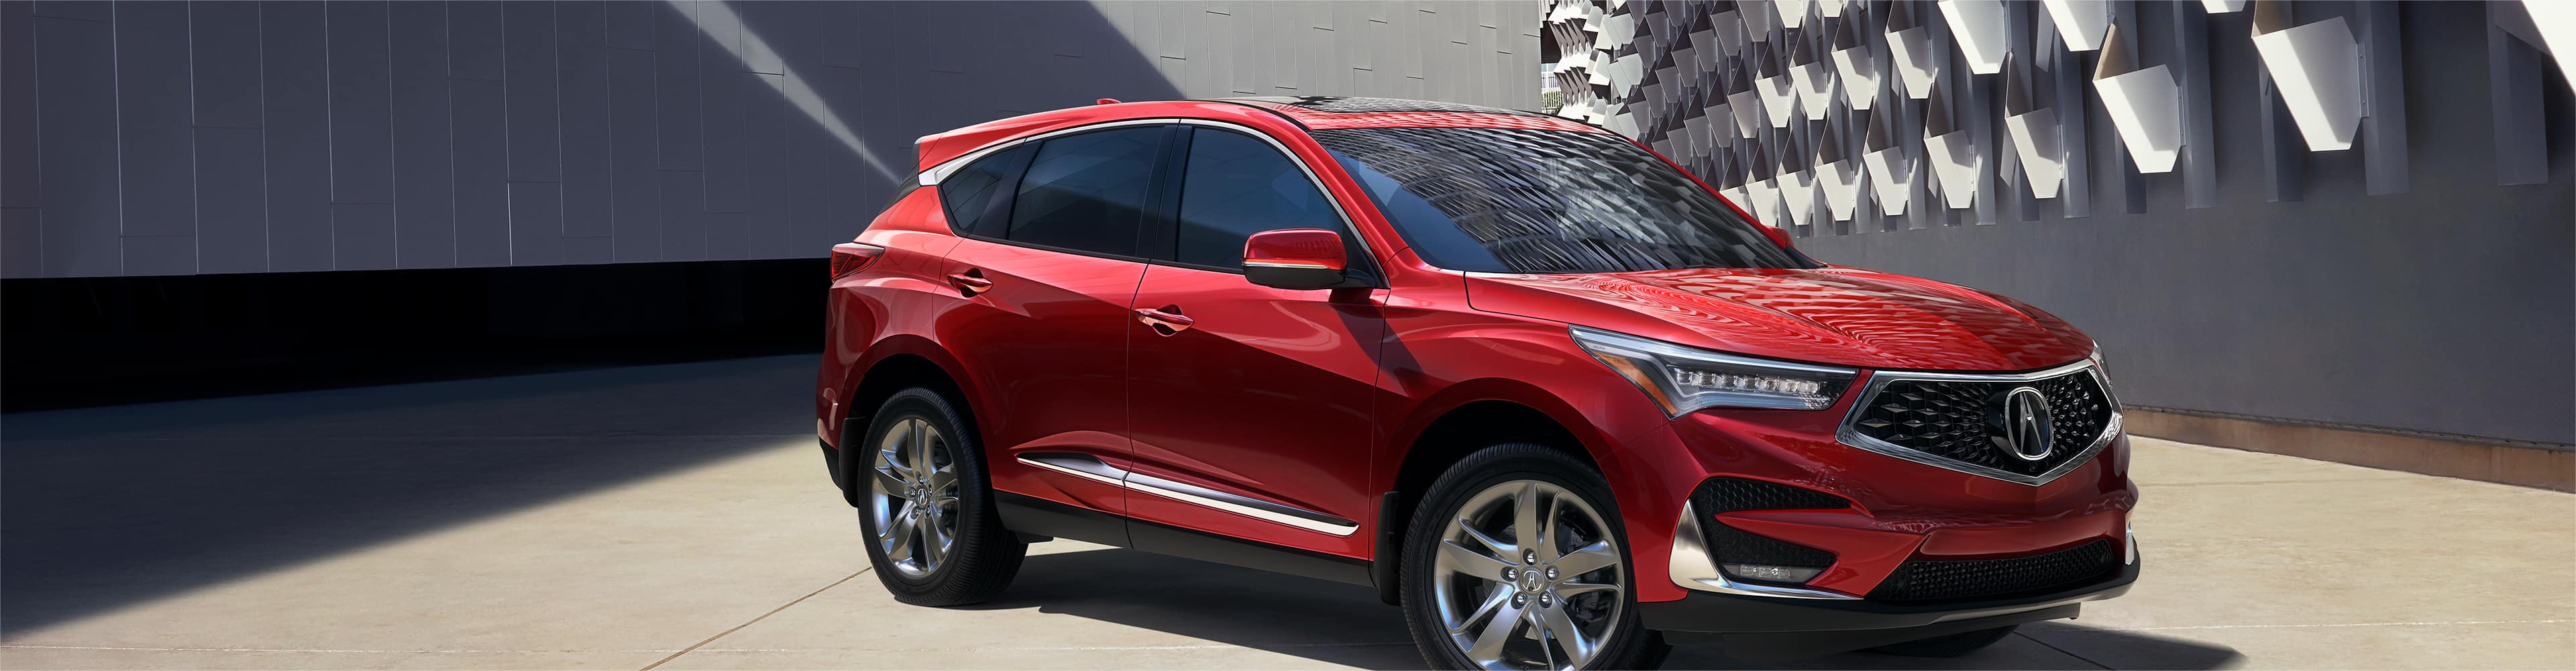 2018 Acura RDX: Possible Redesign, Changes, Price >> Acura With In Car Wi Fi From At T